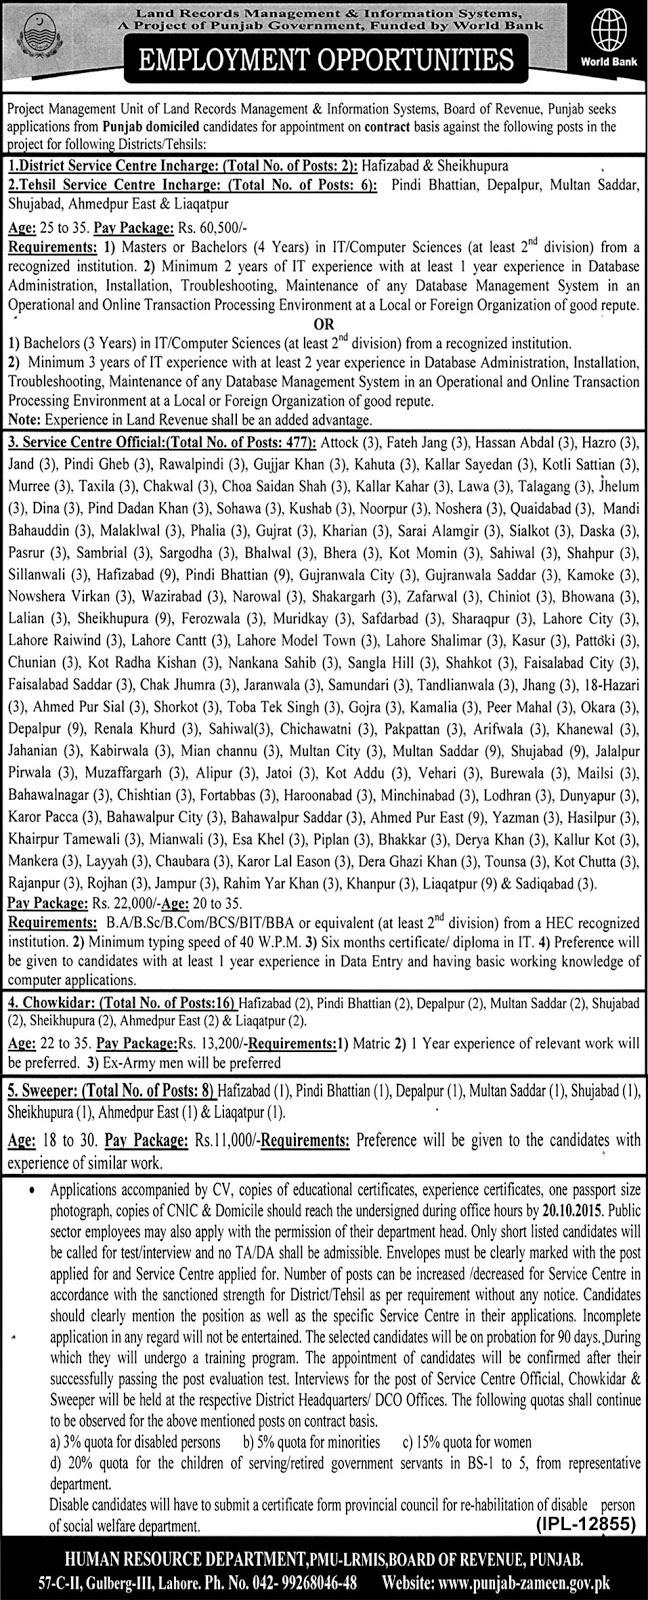 employment opportunities in board of revenue Punjab